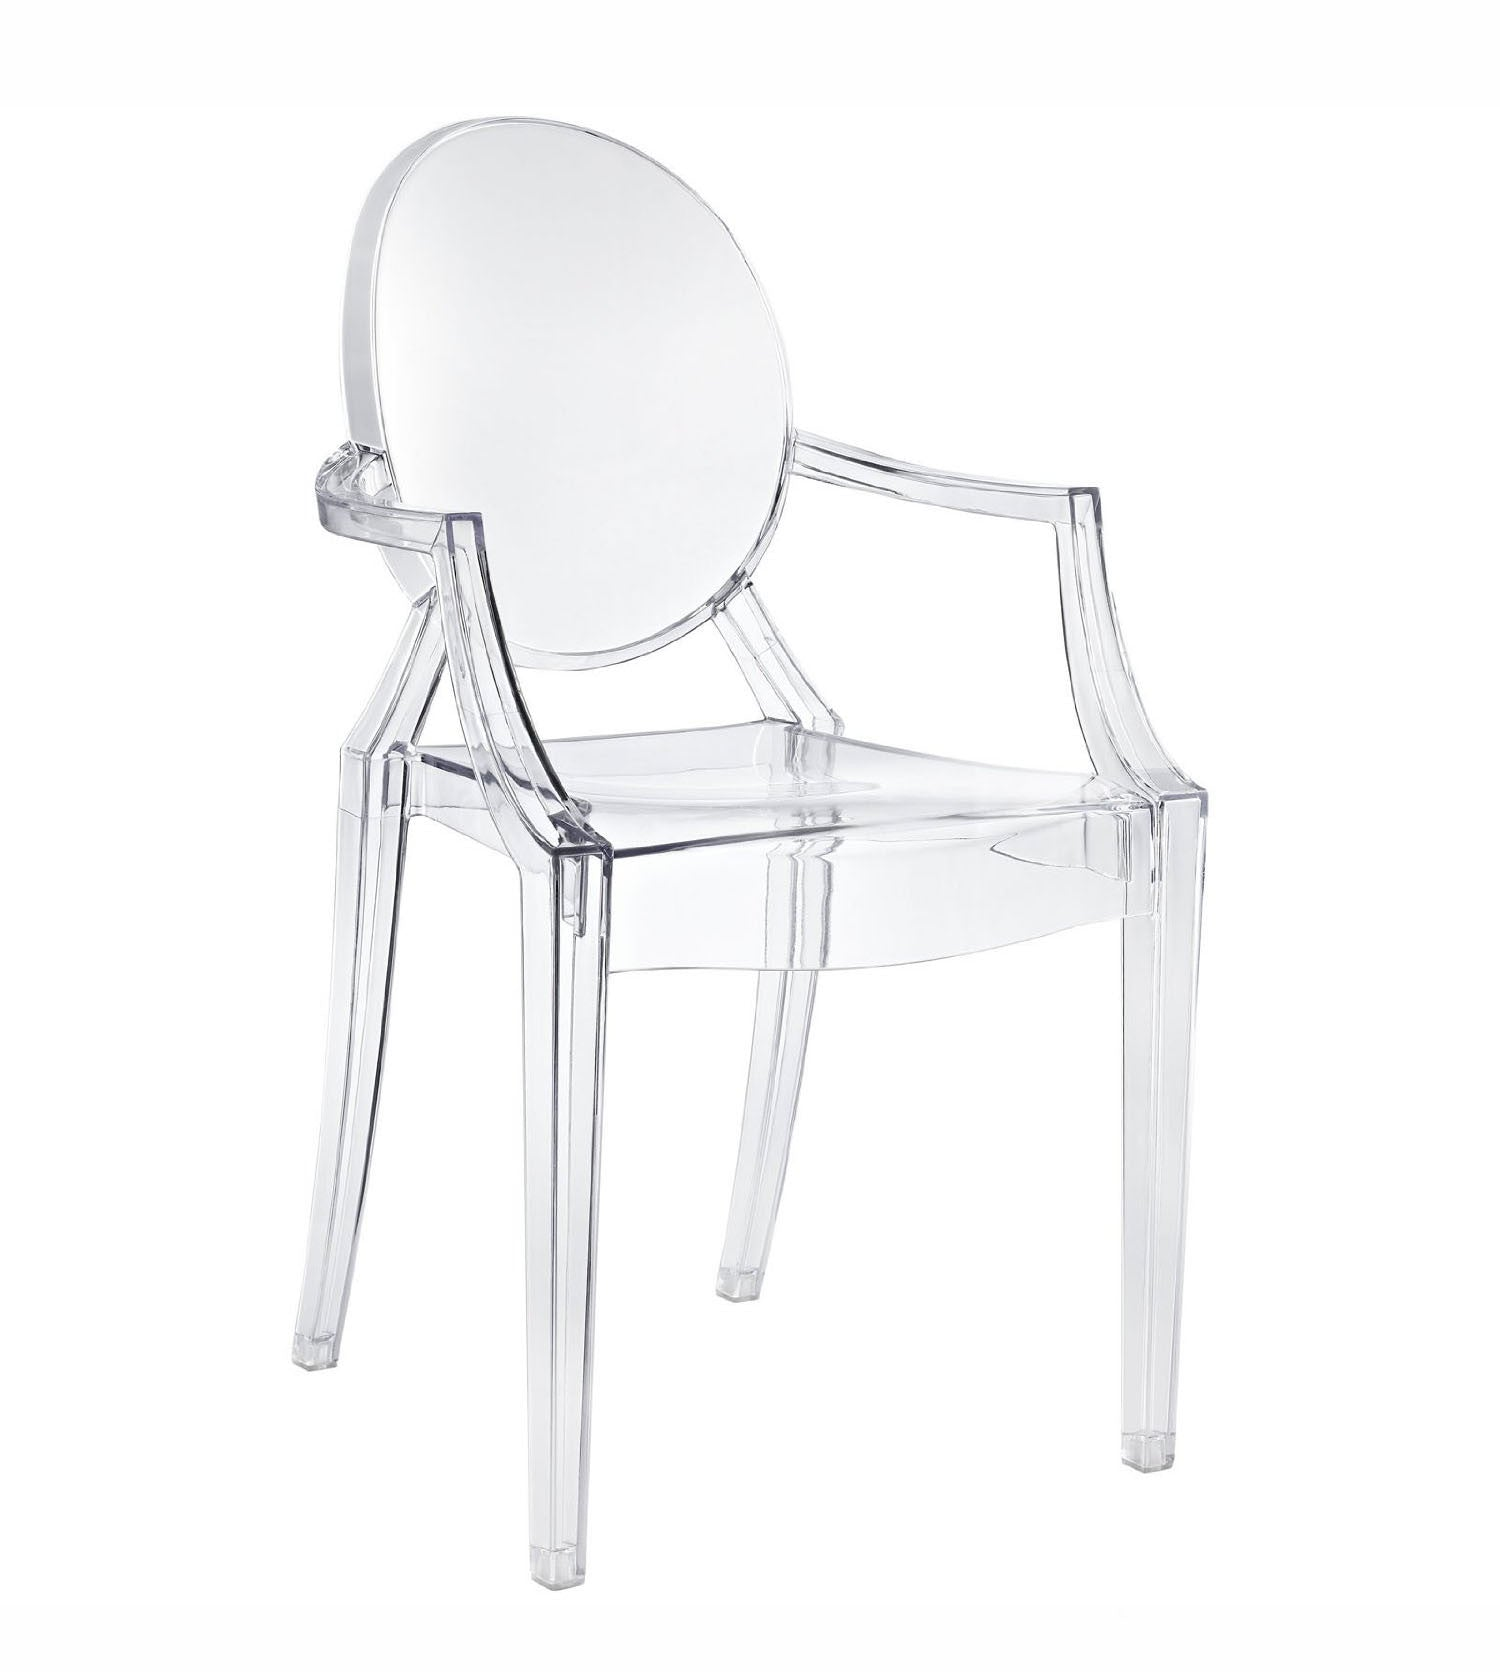 Pre-Order 60 days Delivery Acrylic Kristal Clear Arm Chair KGT0004-PC-099 - ebarza